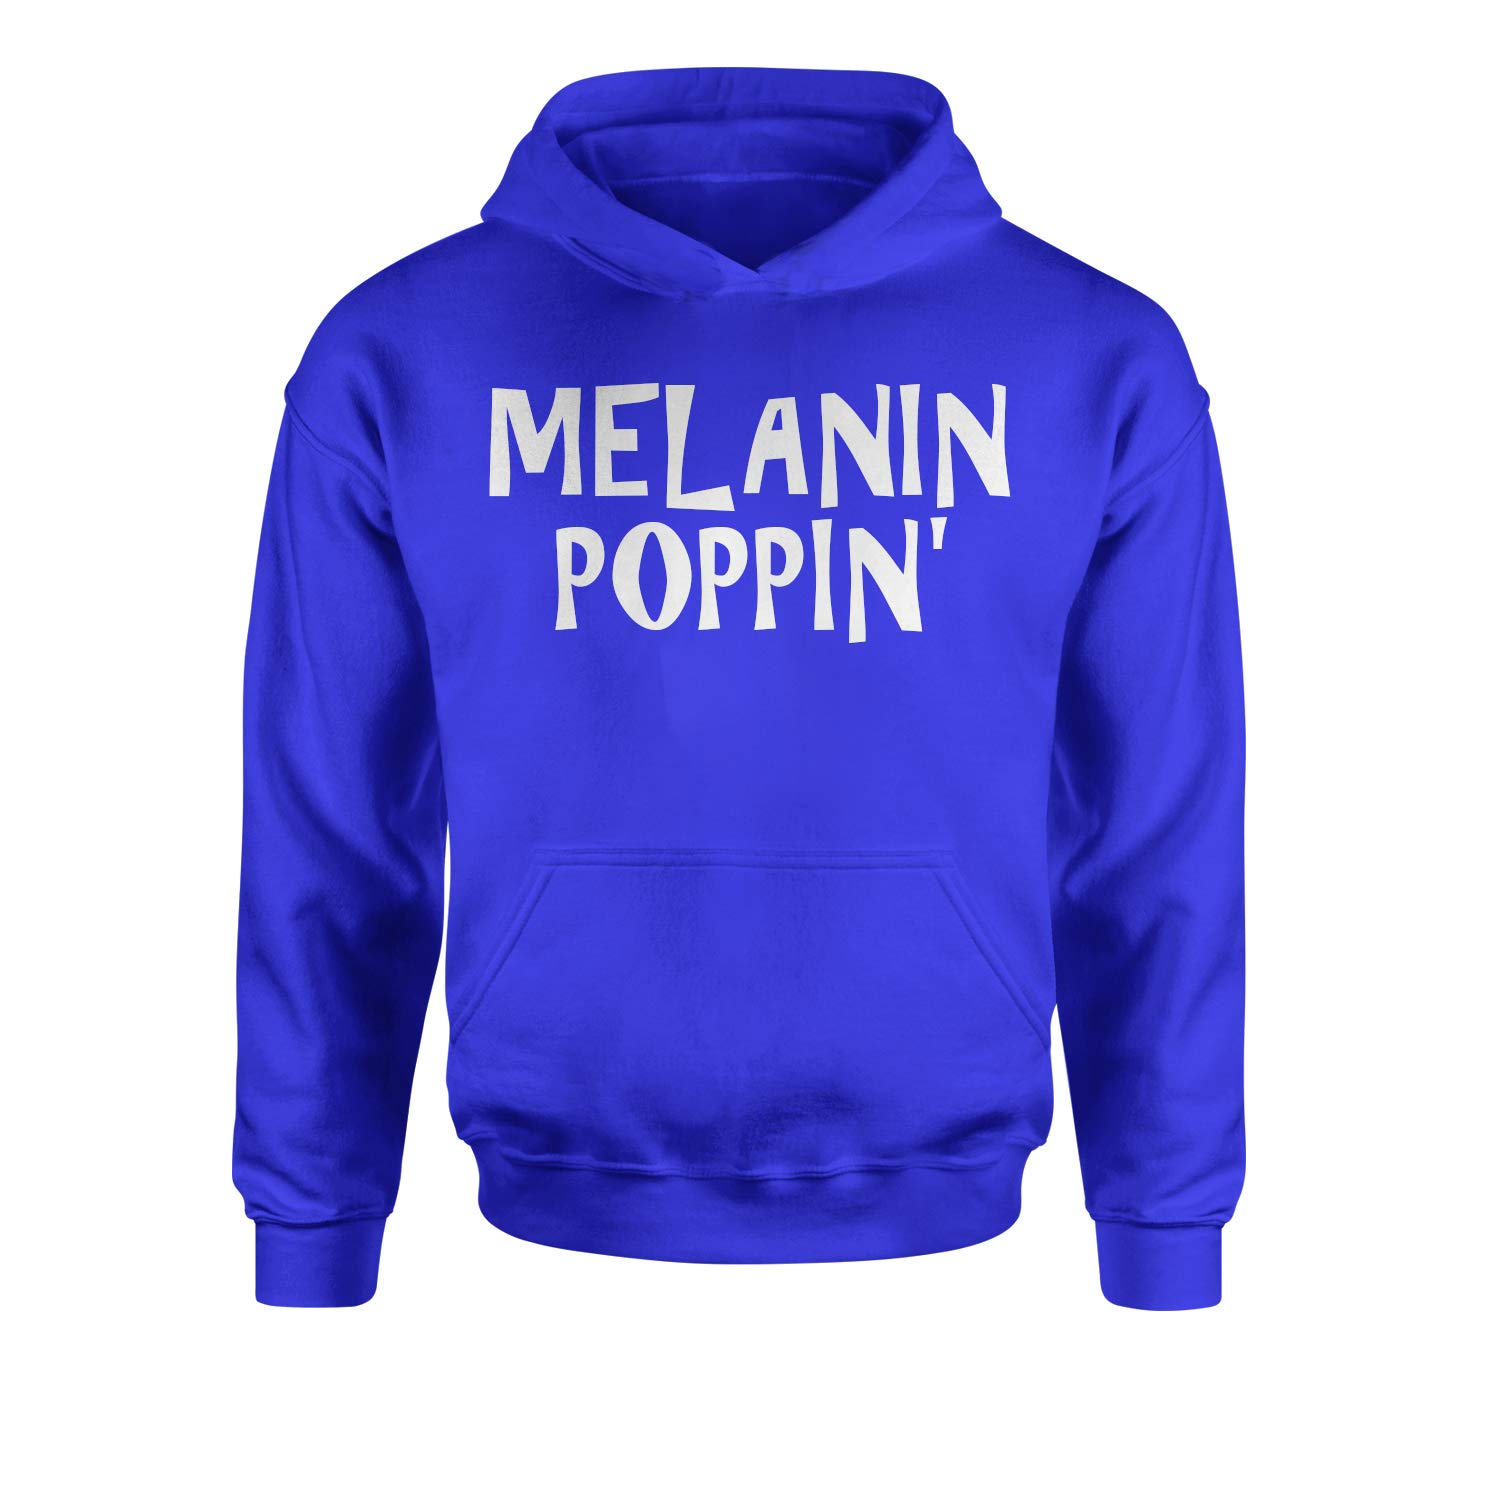 Expression Tees Melanin Poppin Youth-Sized Hoodie